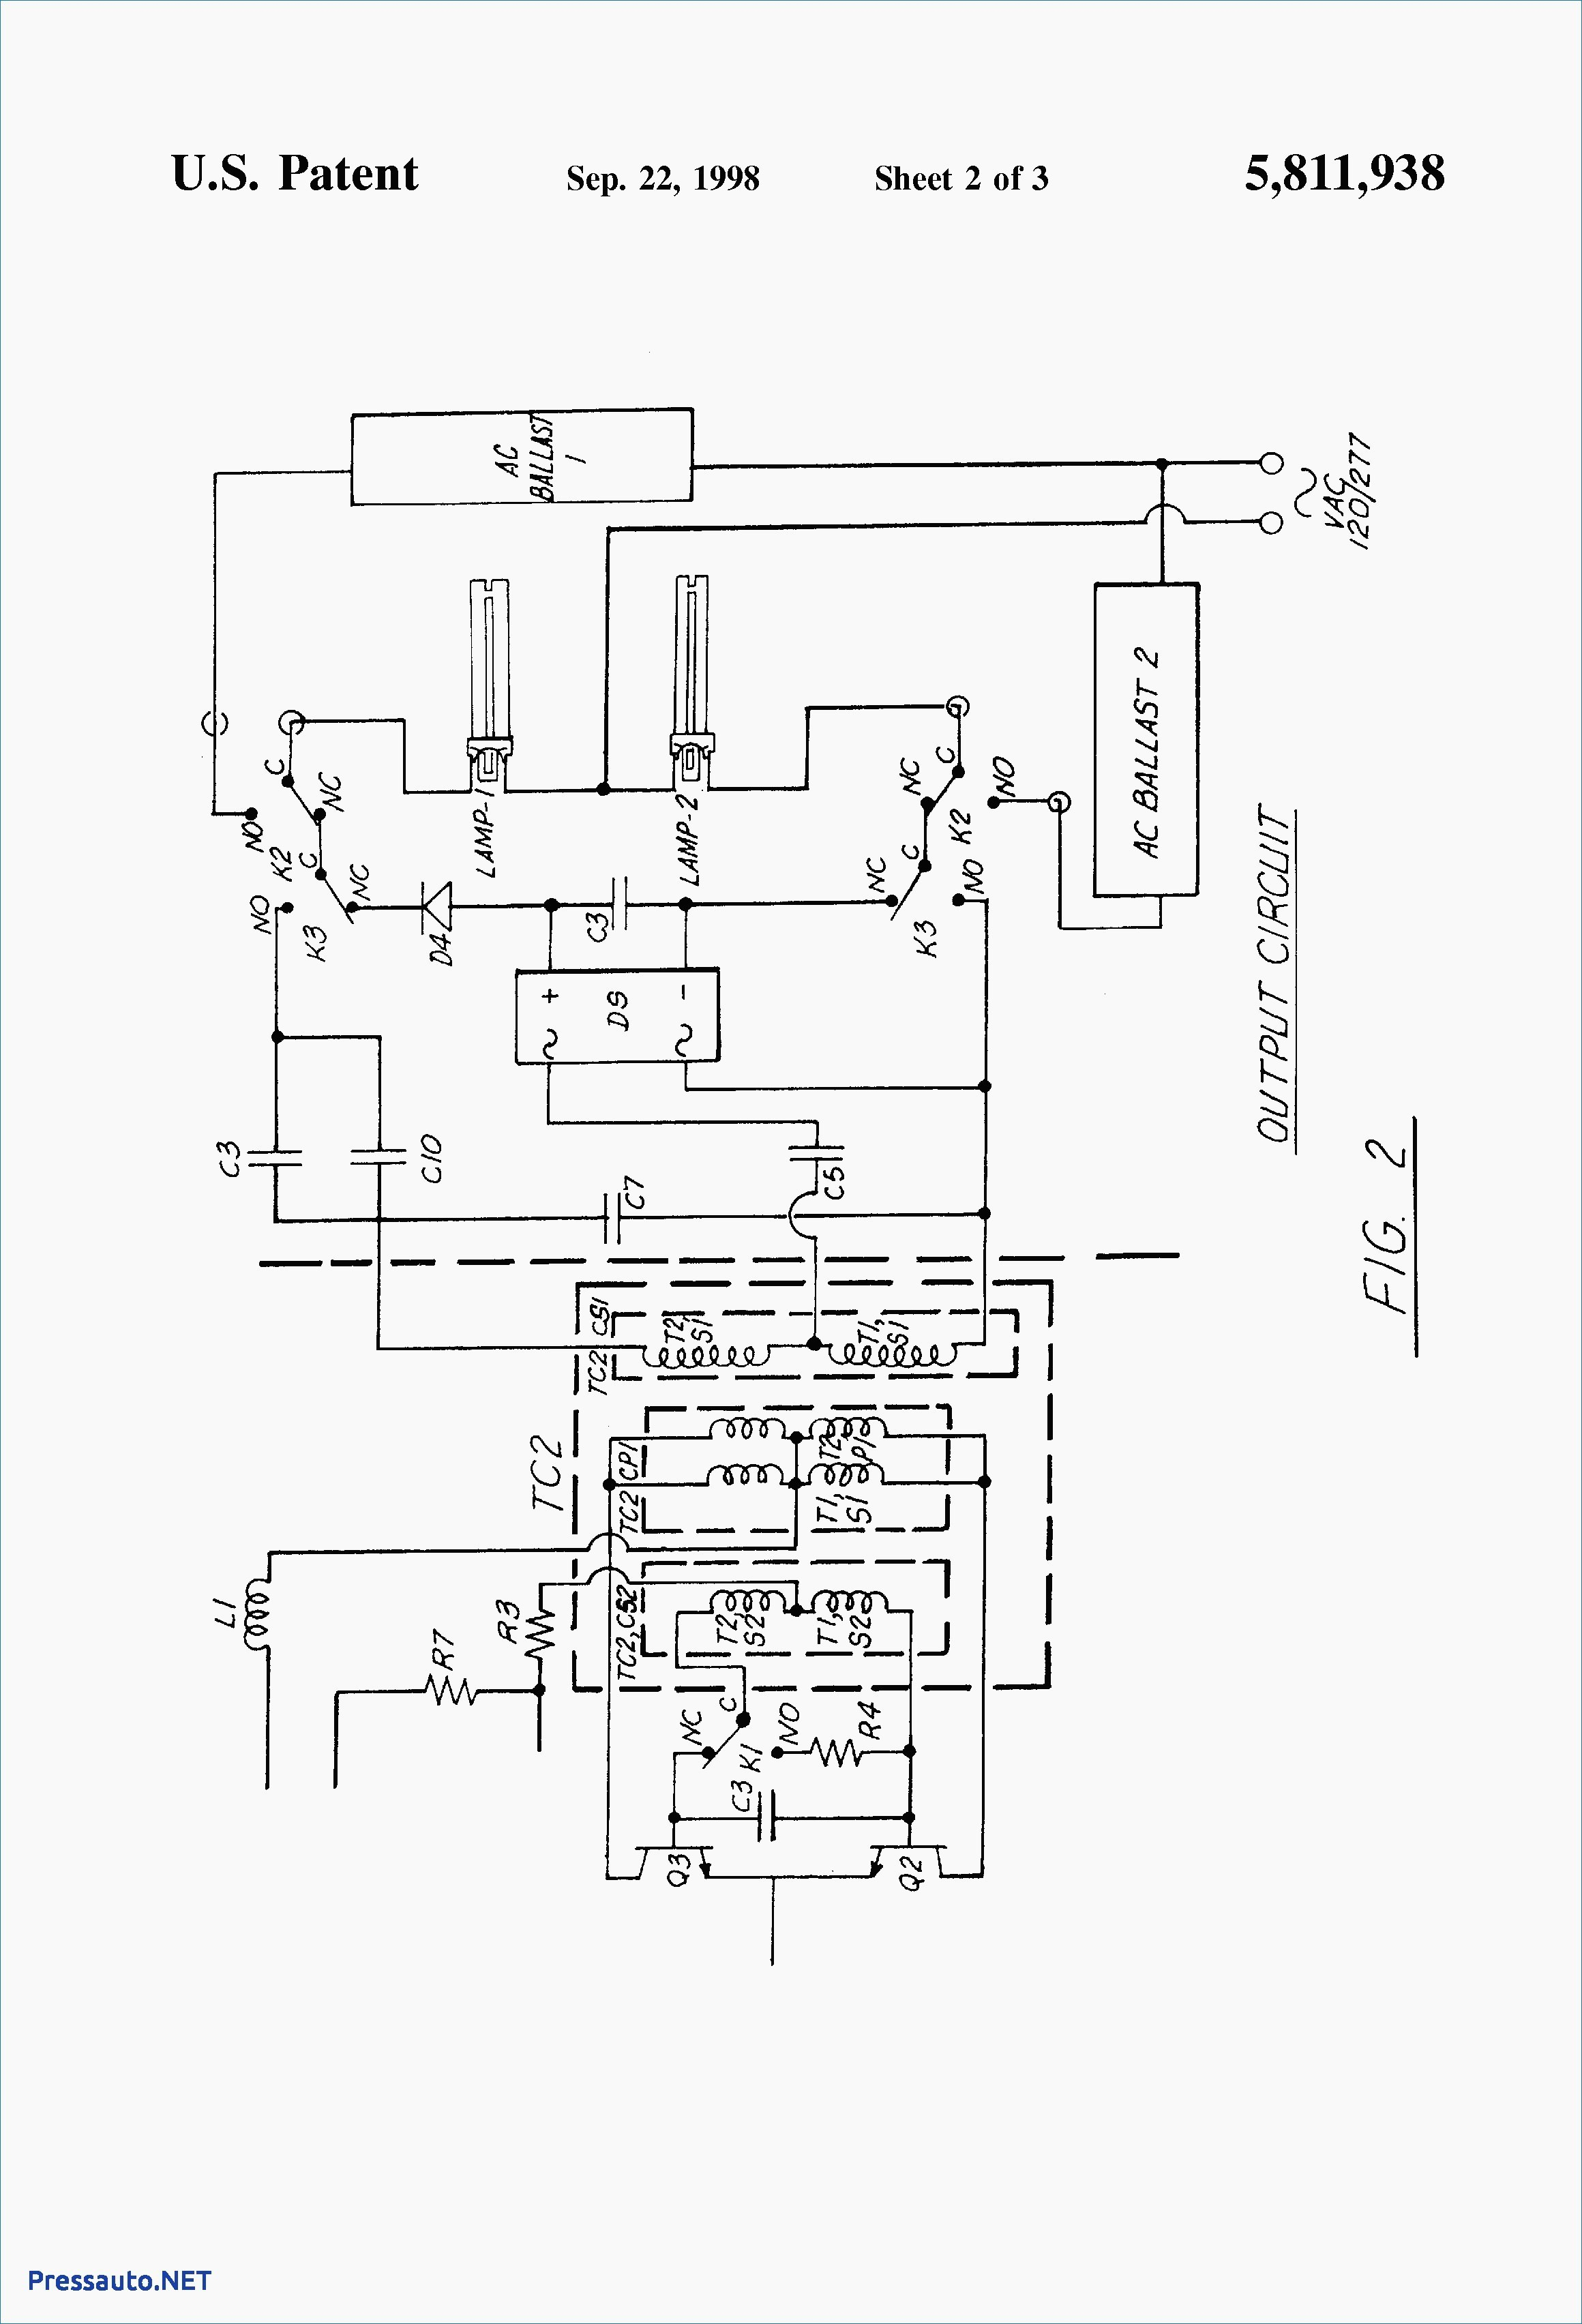 emergency exit sign wiring diagram Collection-Emergency Exit Lights Wiring Diagram Refrence Exit Lighting Wiring Diagram Refrence Wiring Diagram Emergency 4-j